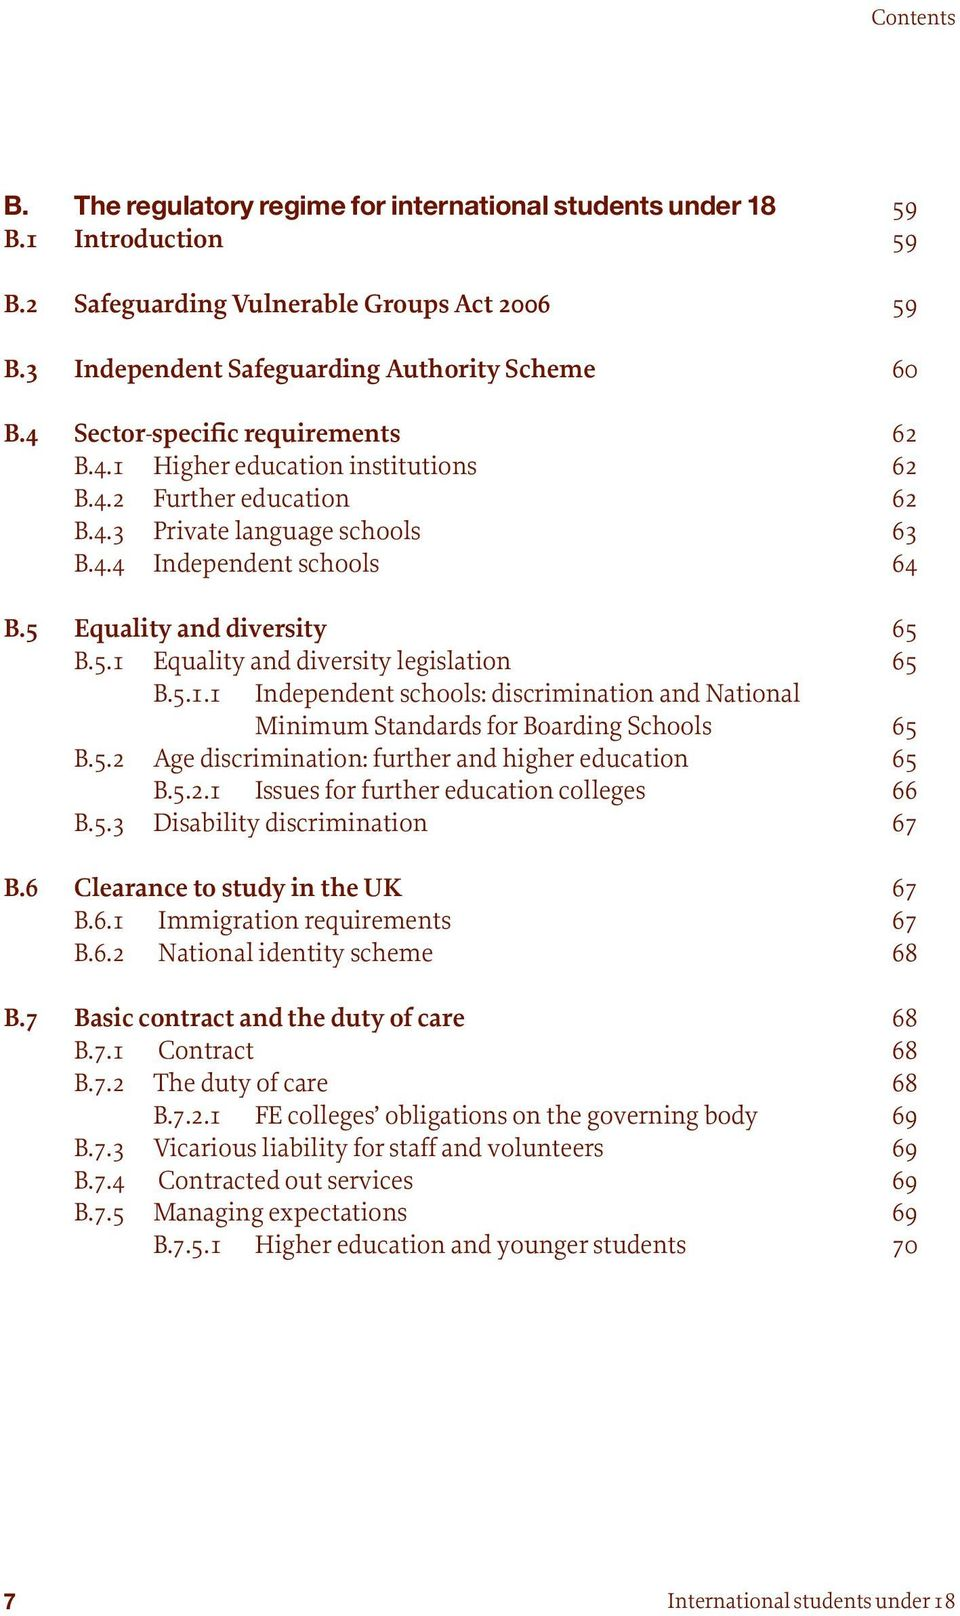 Equality and diversity 65 B.5.1 Equality and diversity legislation 65 B.5.1.1 Independent schools: discrimination and National Minimum Standards for Boarding Schools 65 B.5.2 Age discrimination: further and higher education 65 B.